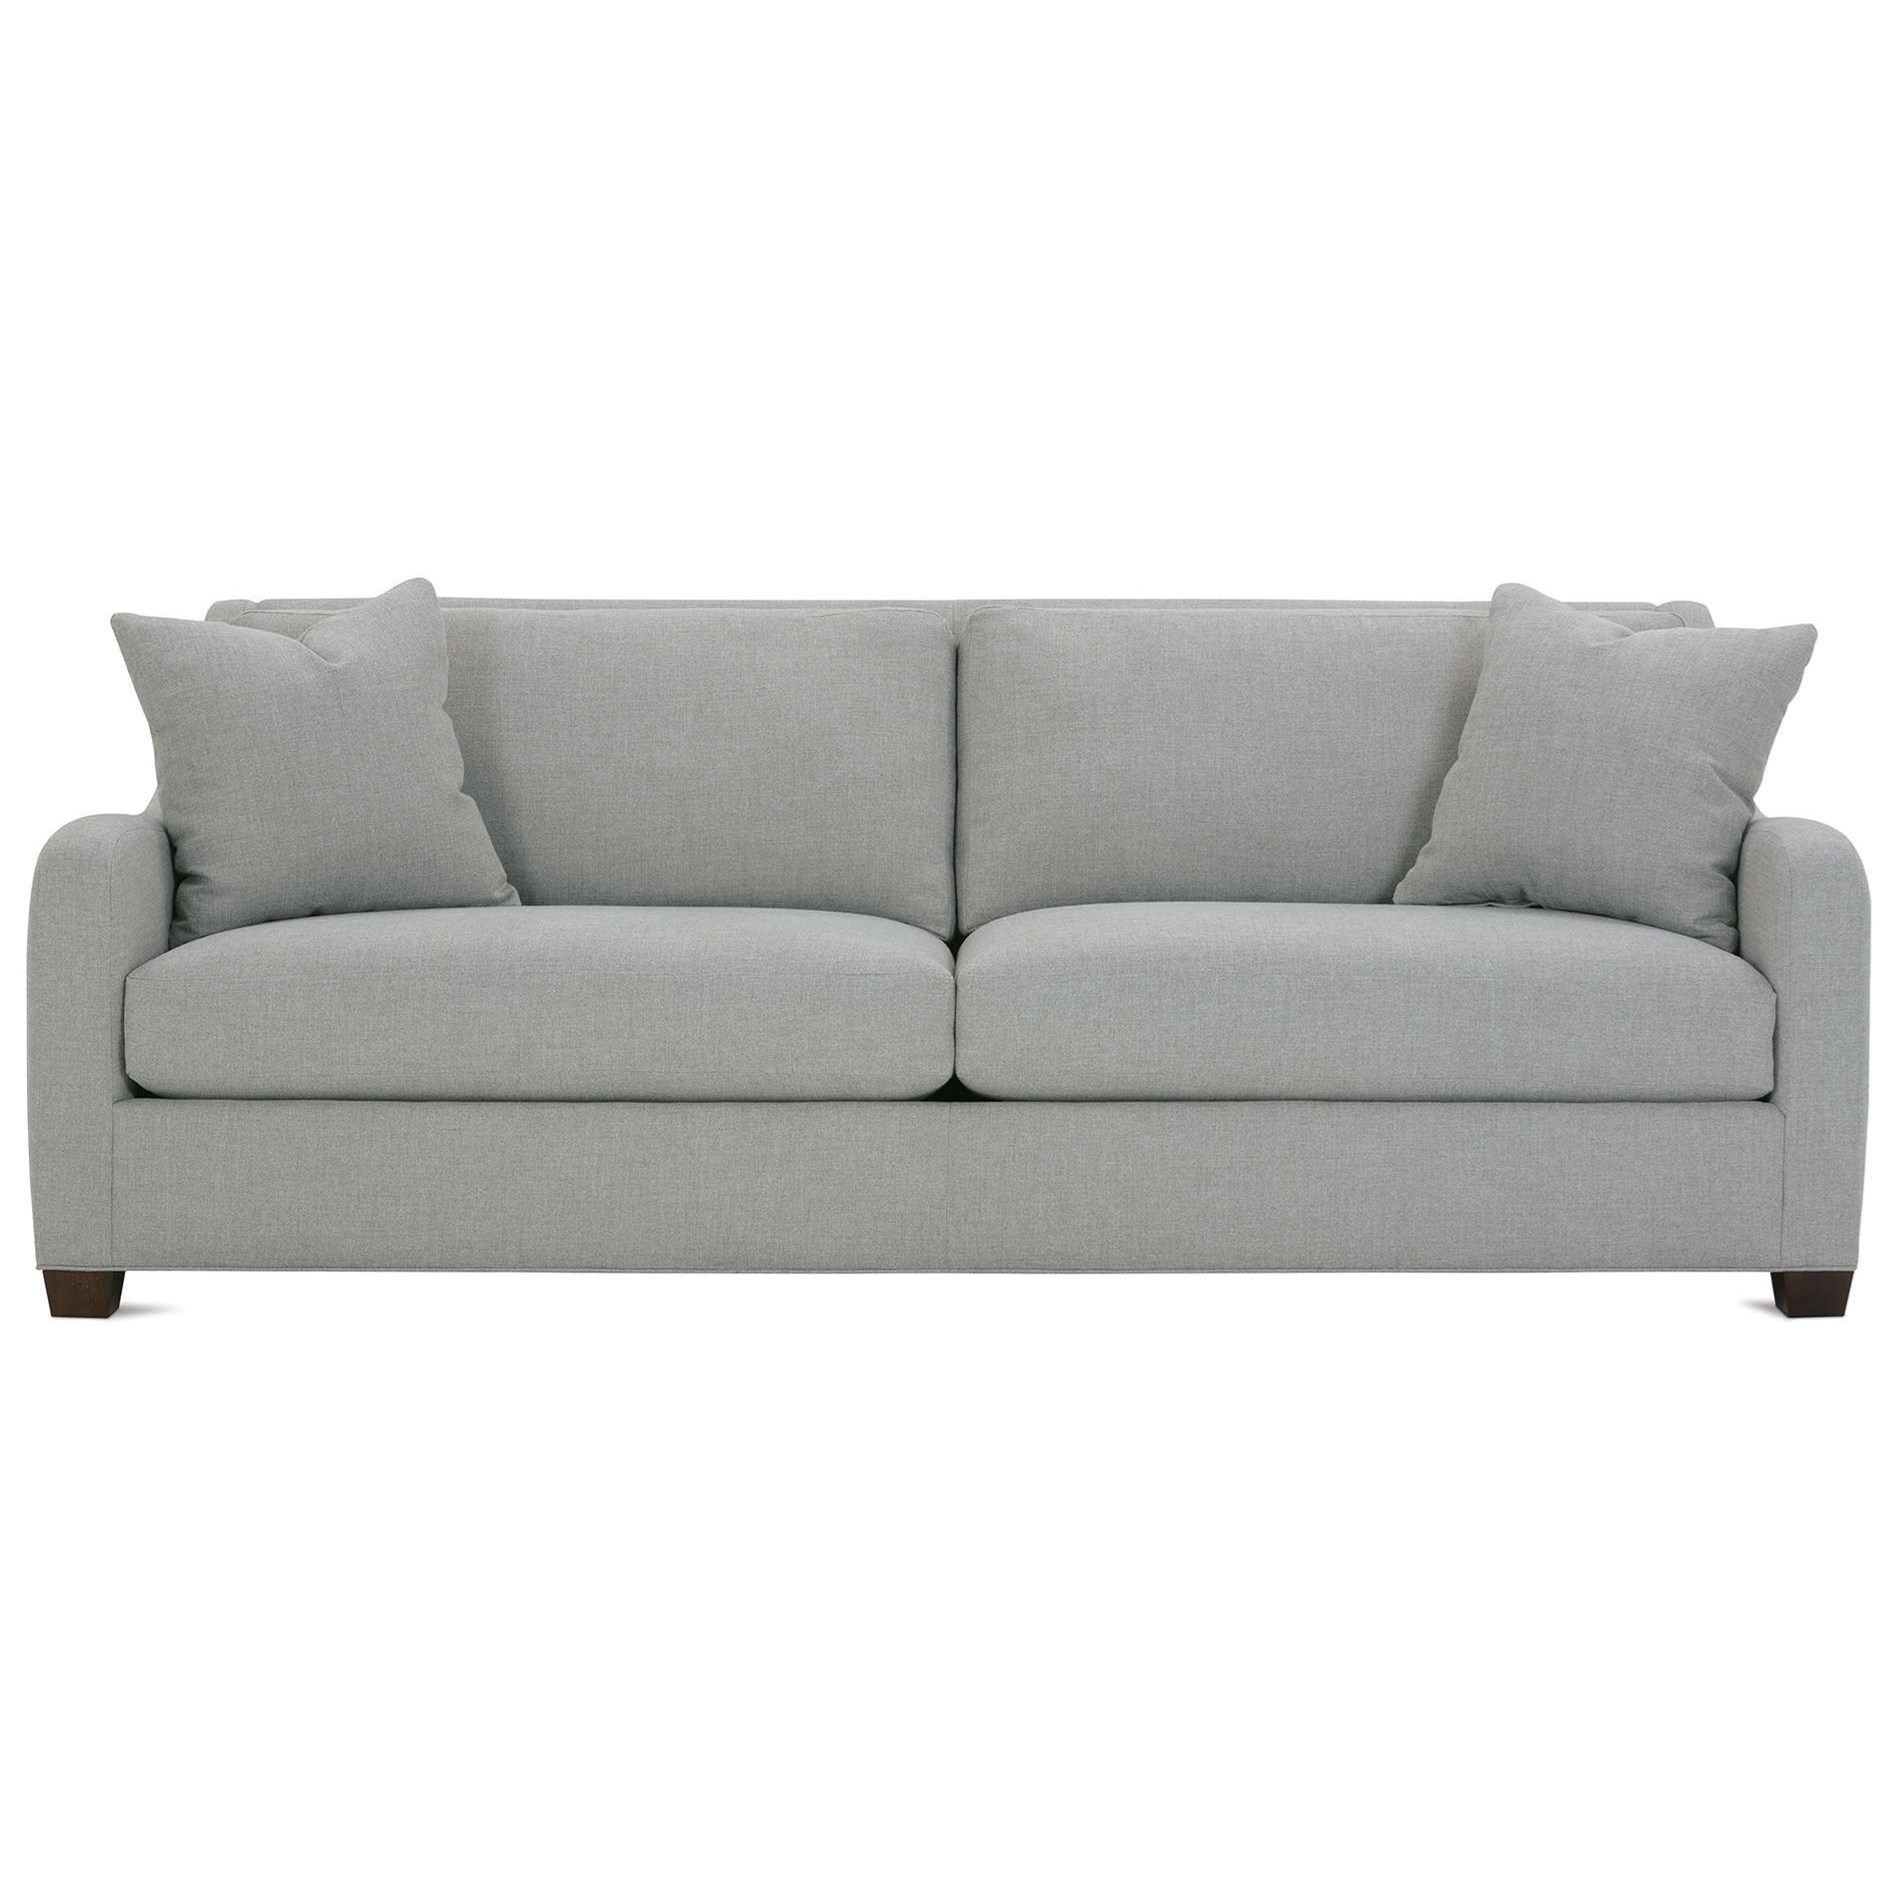 Contemporary Couch Rowe Abbie Contemporary Sofa With Saddle Arms Belfort Furniture